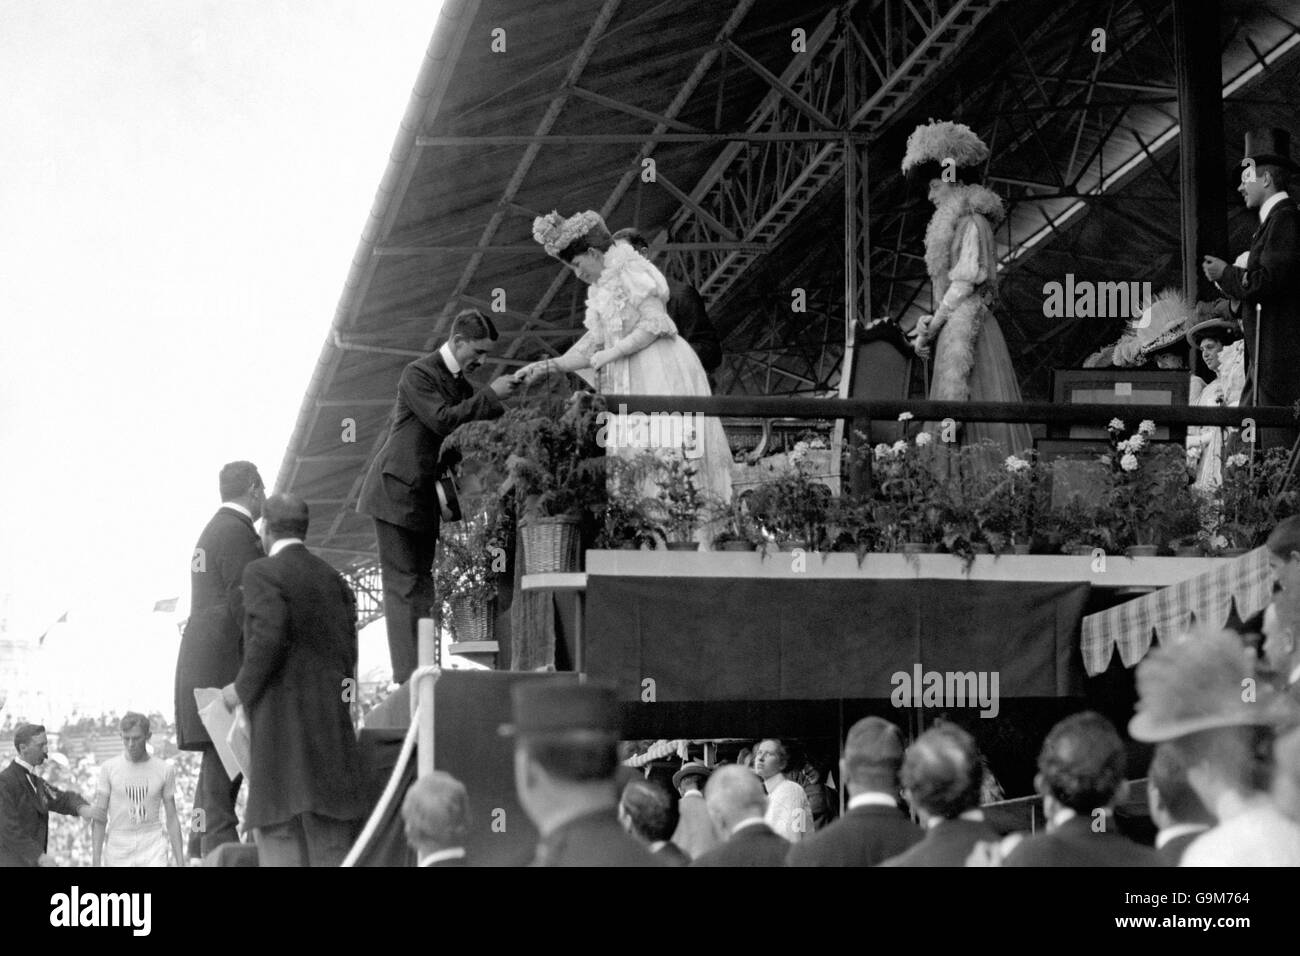 London Olympic Games 1908 - Prize-Giving Ceremony - White City - Stock Image